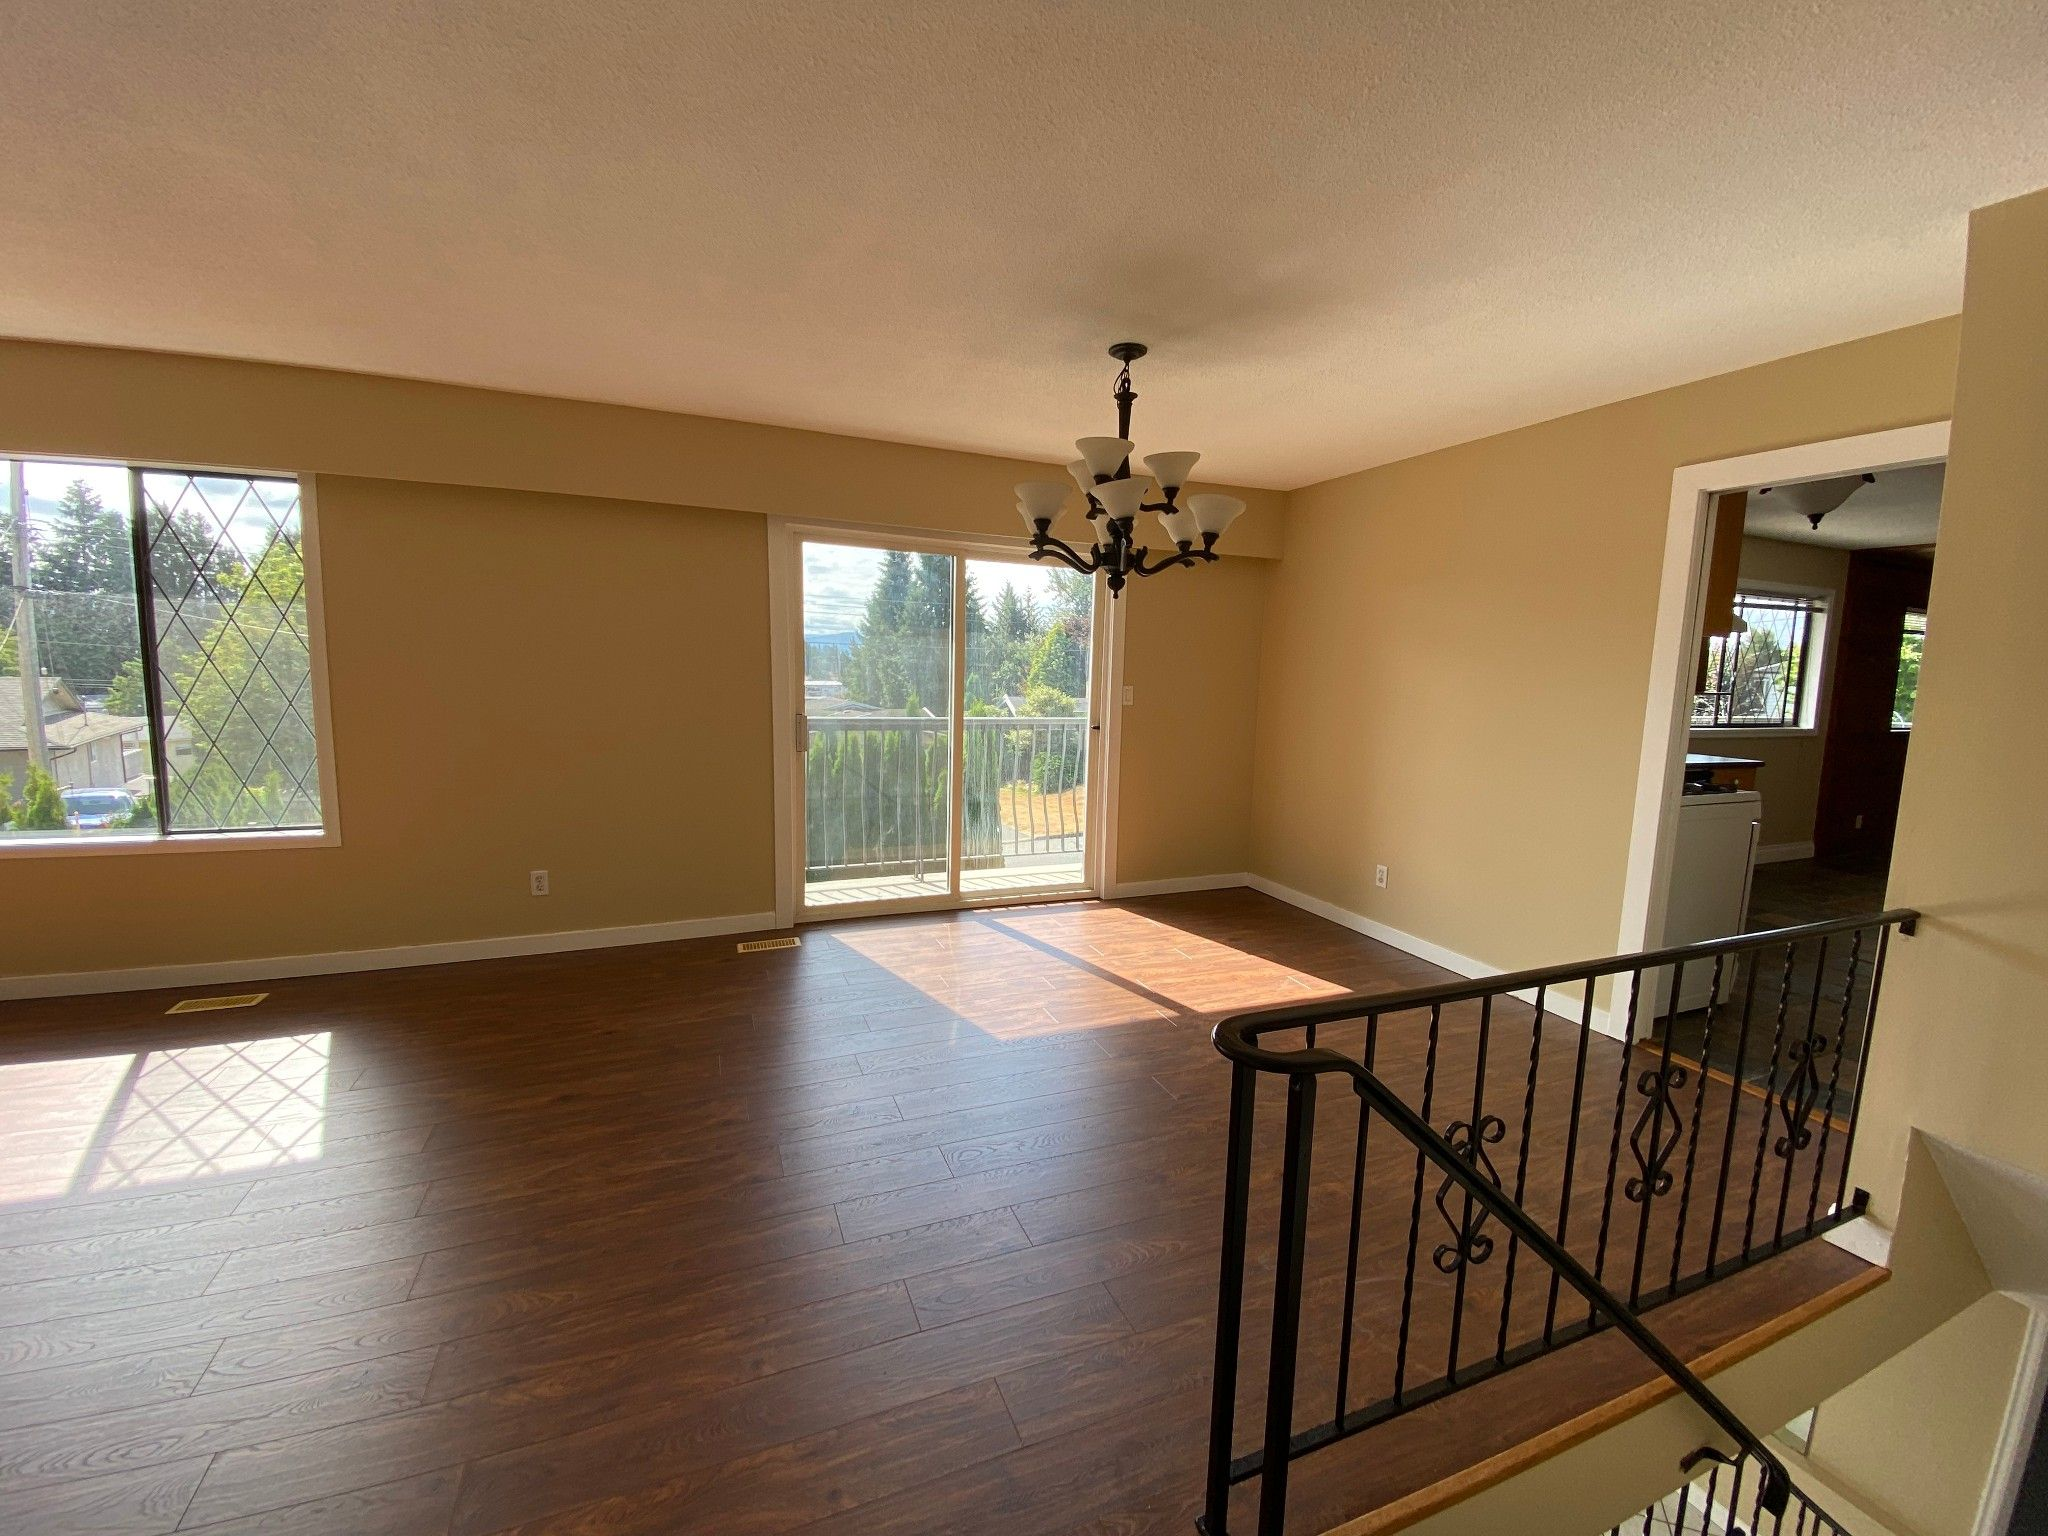 Photo 3: Photos: 2043 Majestic Cr. in Abbotsford: Abbotsford West House for rent